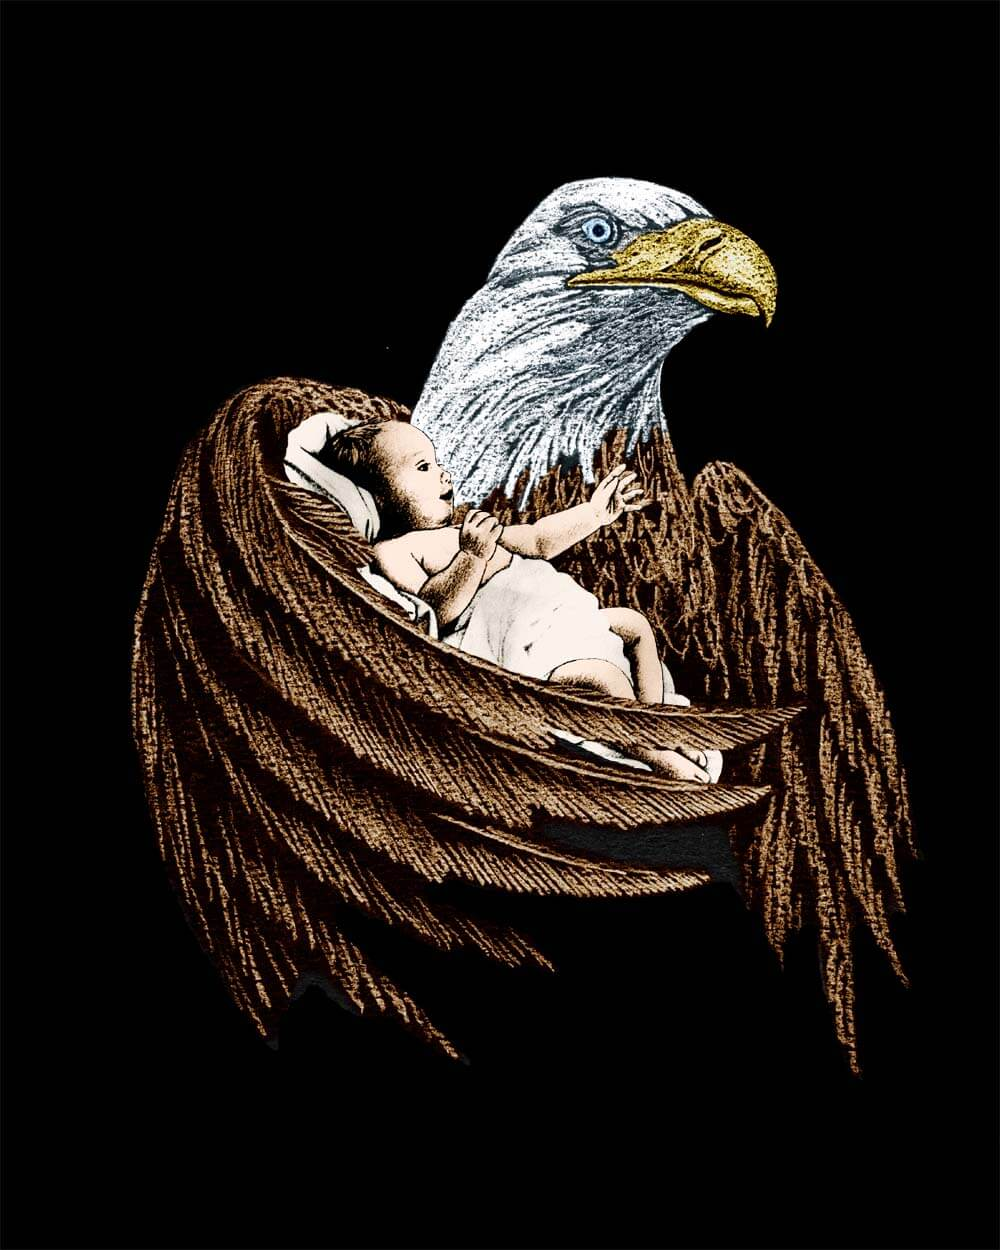 Eagle and Baby